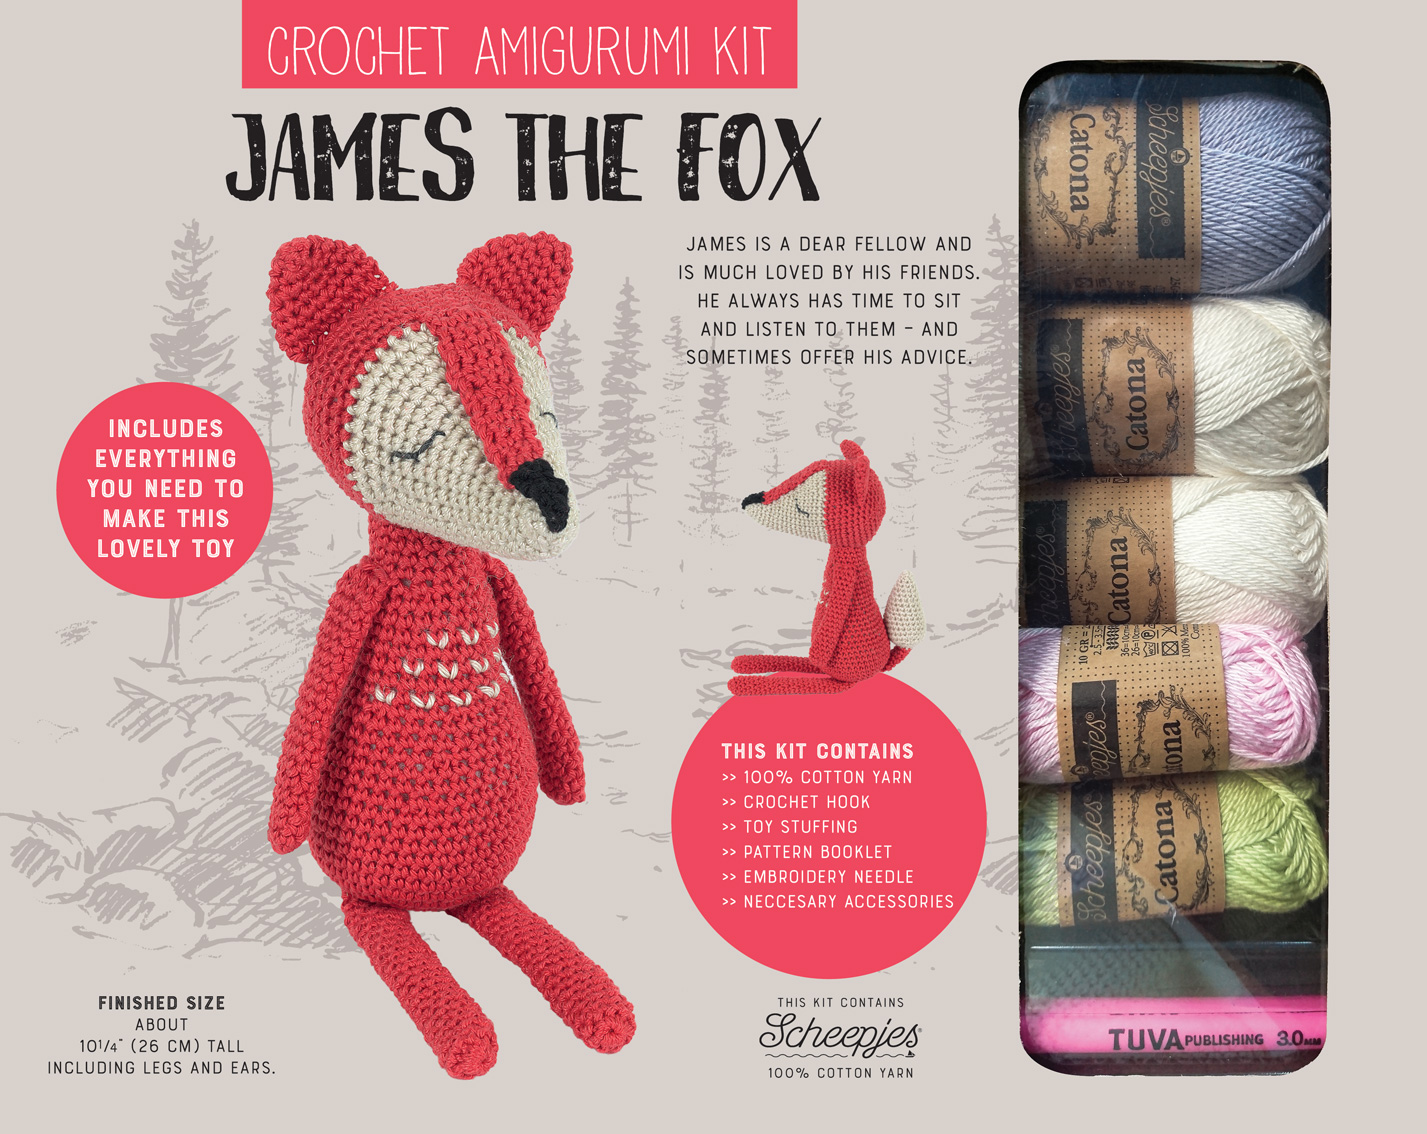 James the Fox